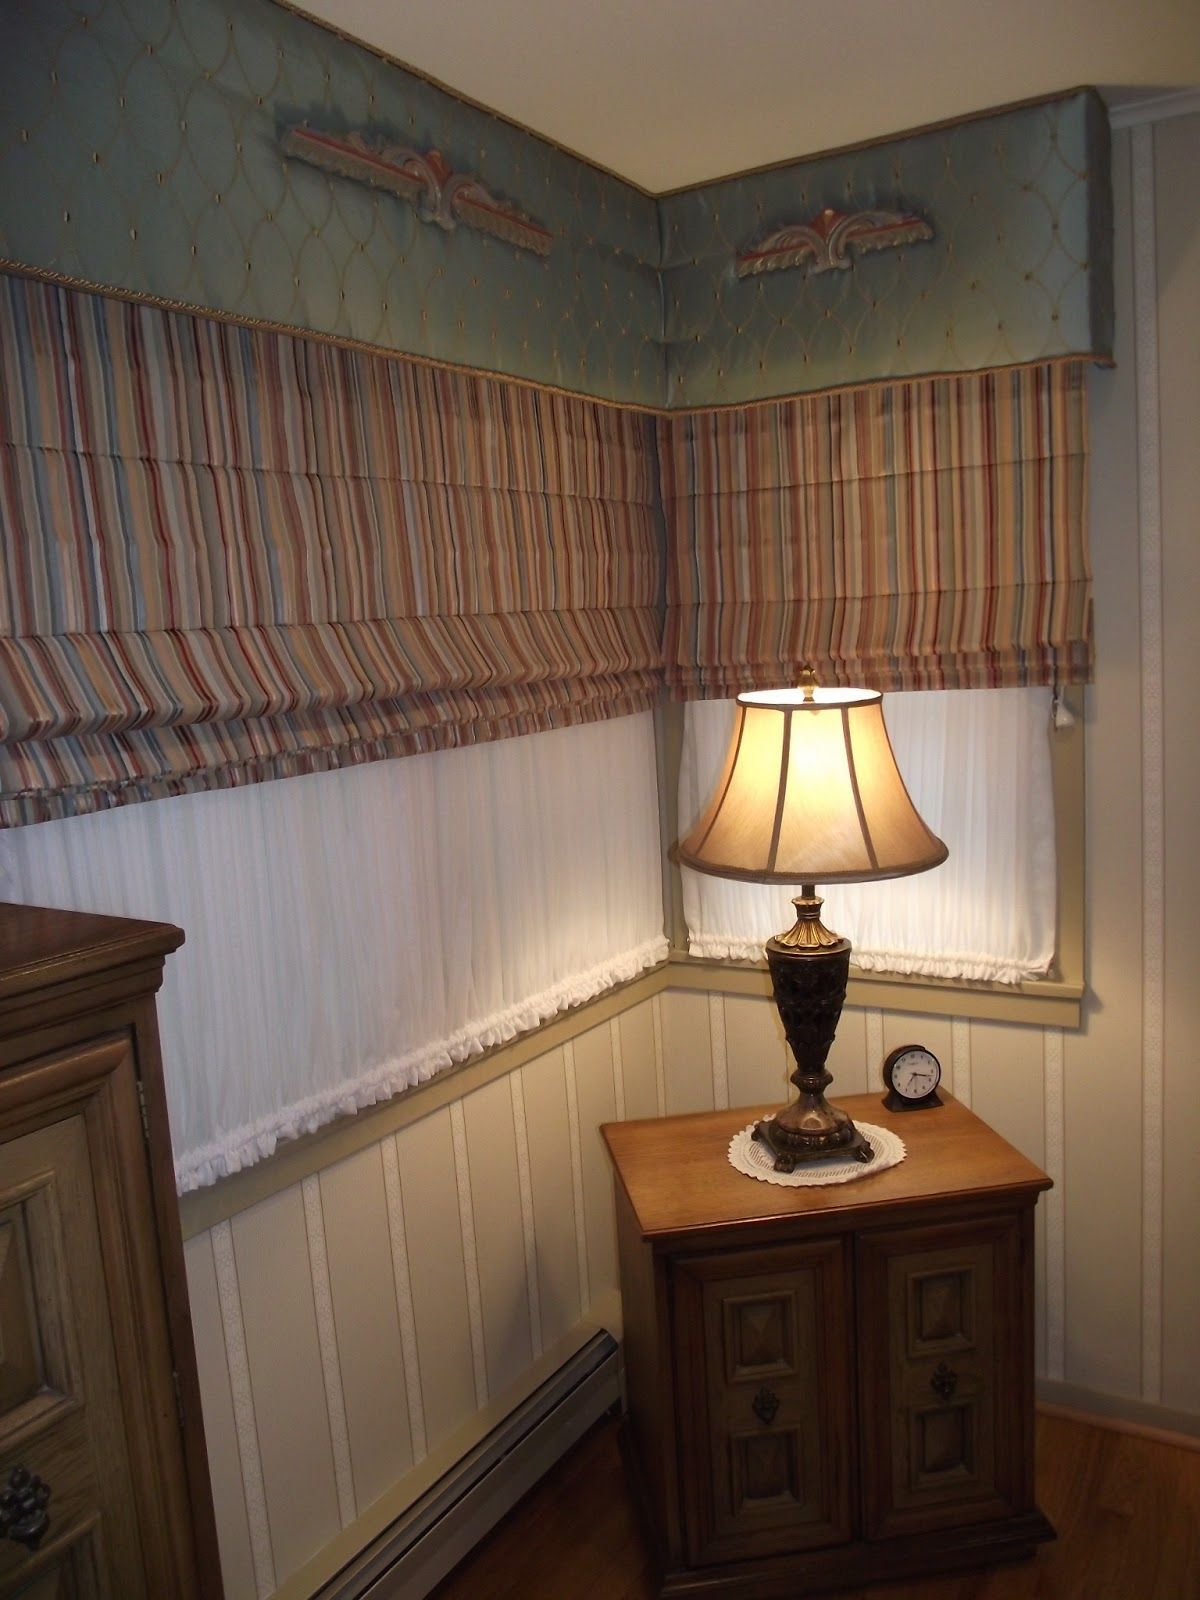 Upholstered Cornice Board For A Corner Window With Sheers For